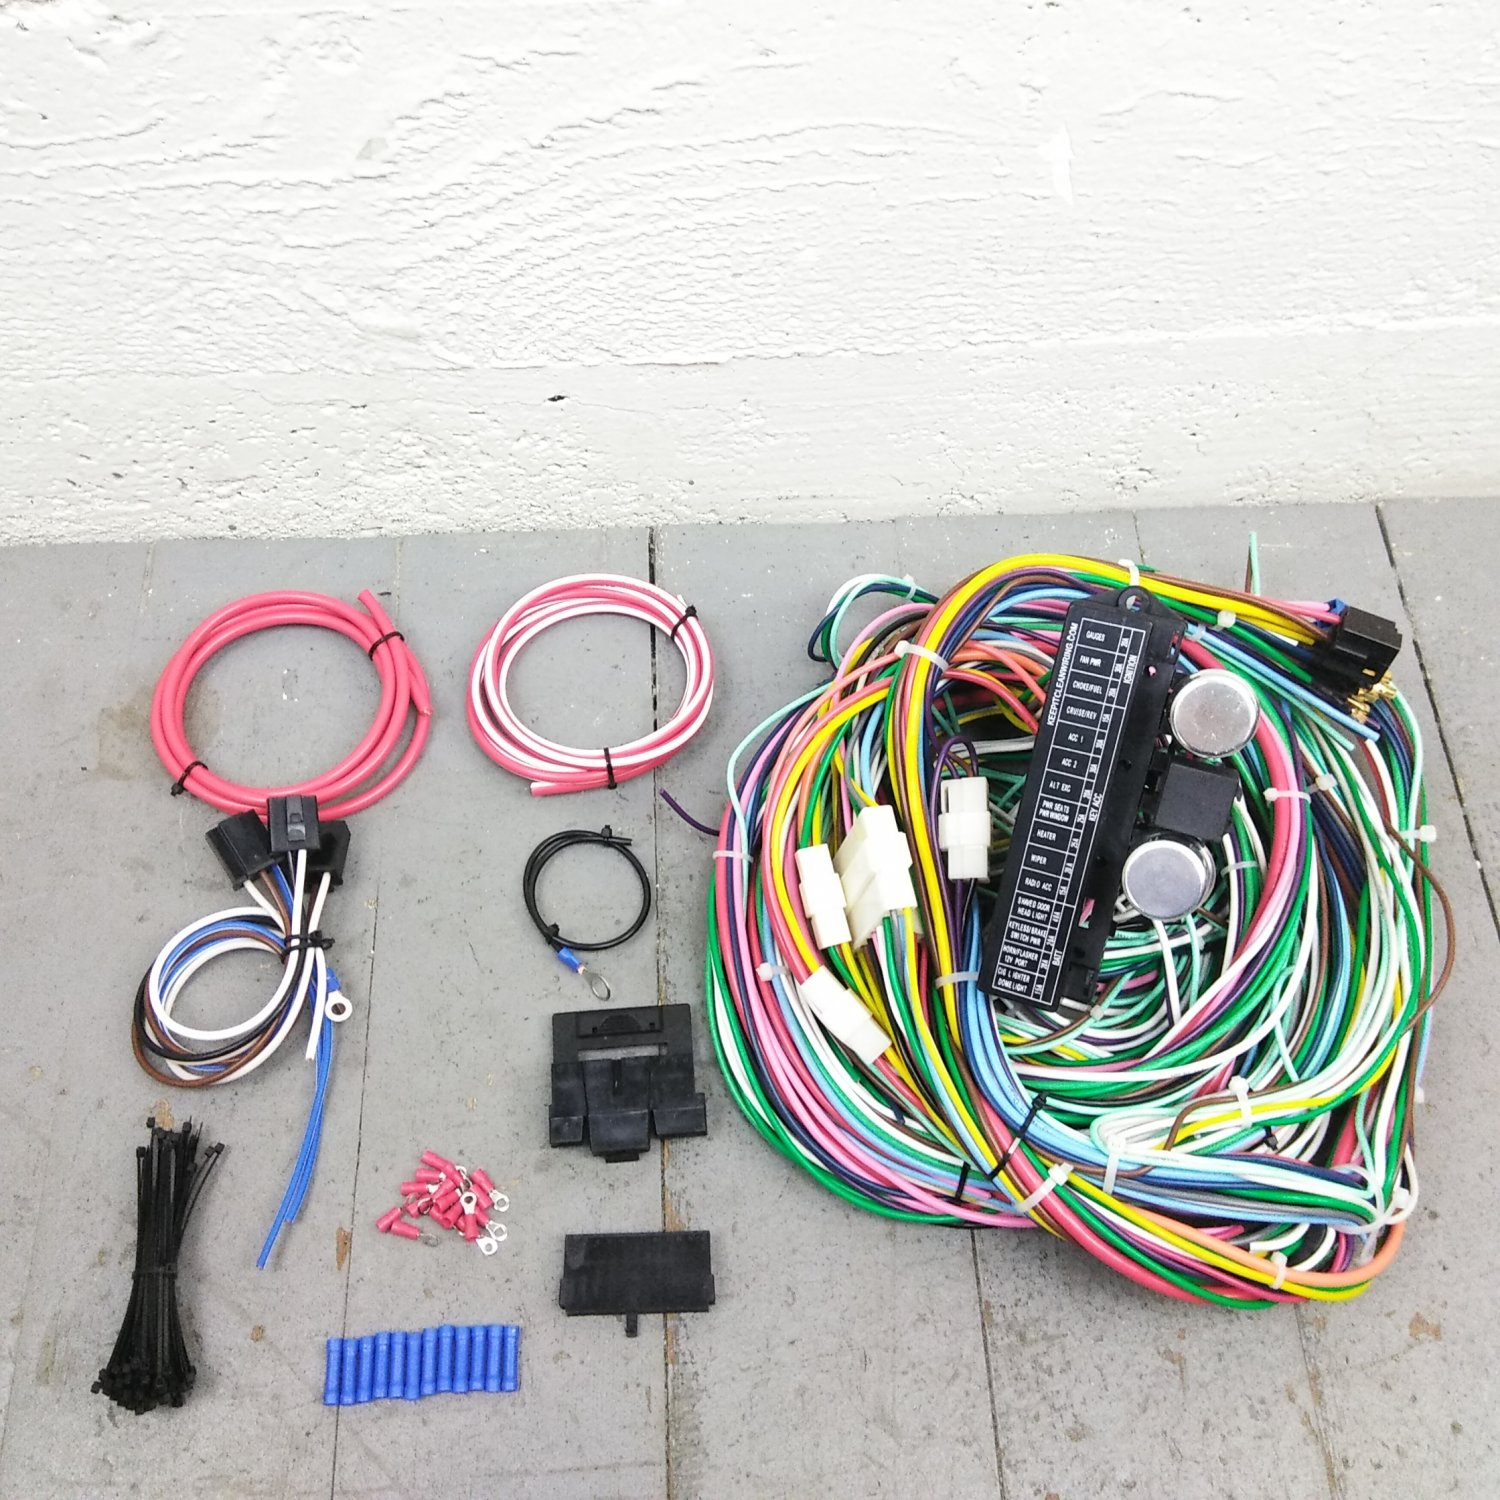 hight resolution of 1970 ford mustang wire harness upgrade kit fits painless fuse block update new bar product description c